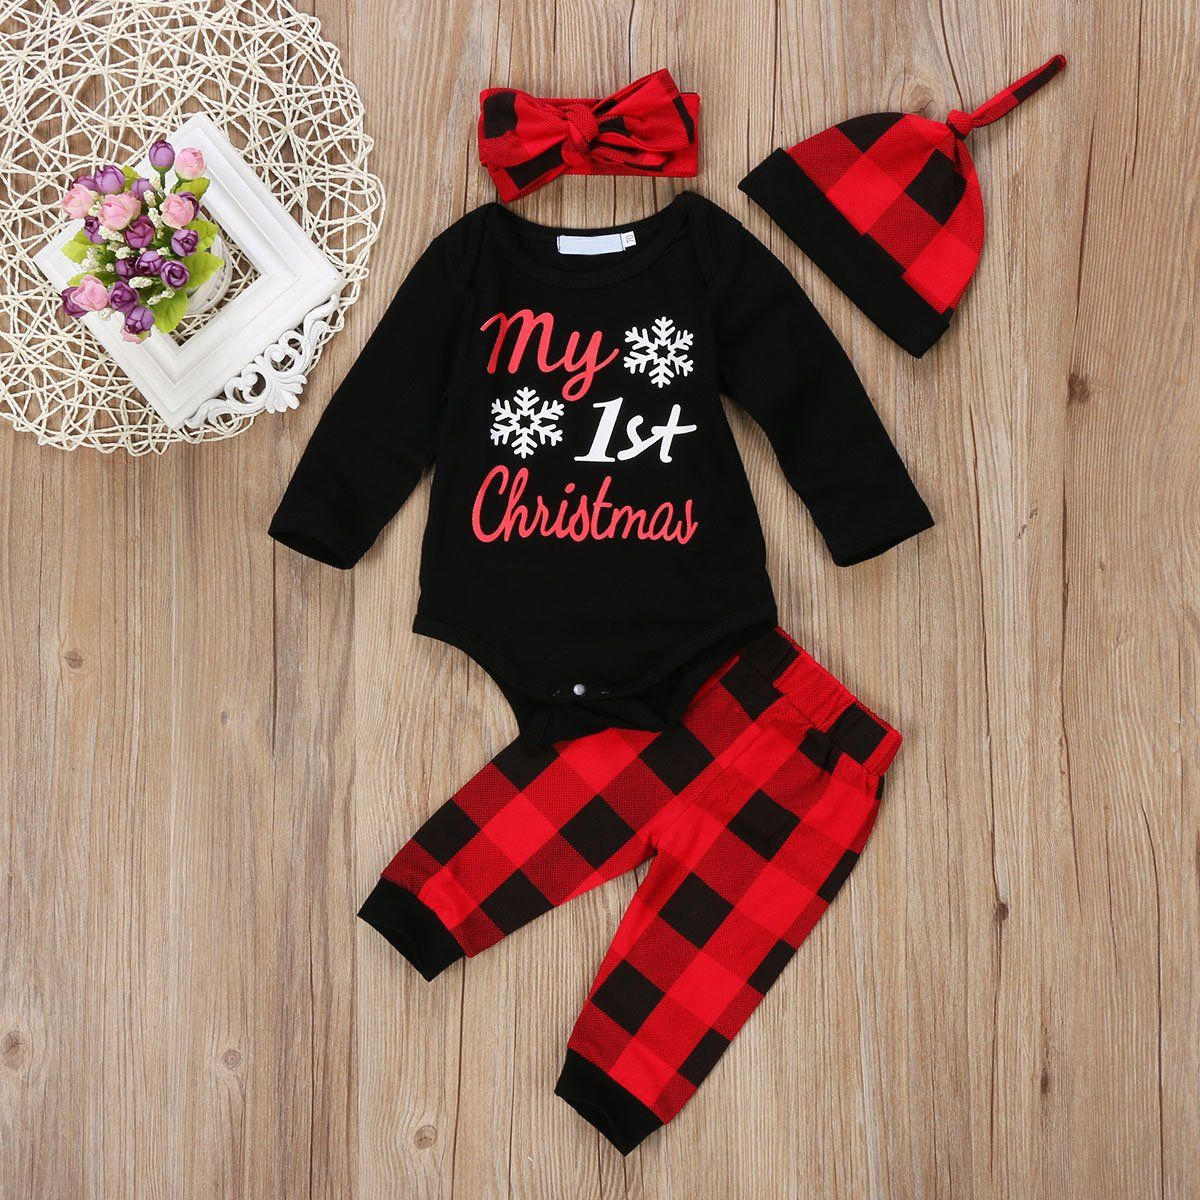 9a21f8a1c798 Newborn Baby Boys Girls My First Christmas Bodysuit and Plaid Pants Leggings  Headband Hat 4pcs Christmas Outfits Set Black 1 80 69 Months -- Read more  at ...